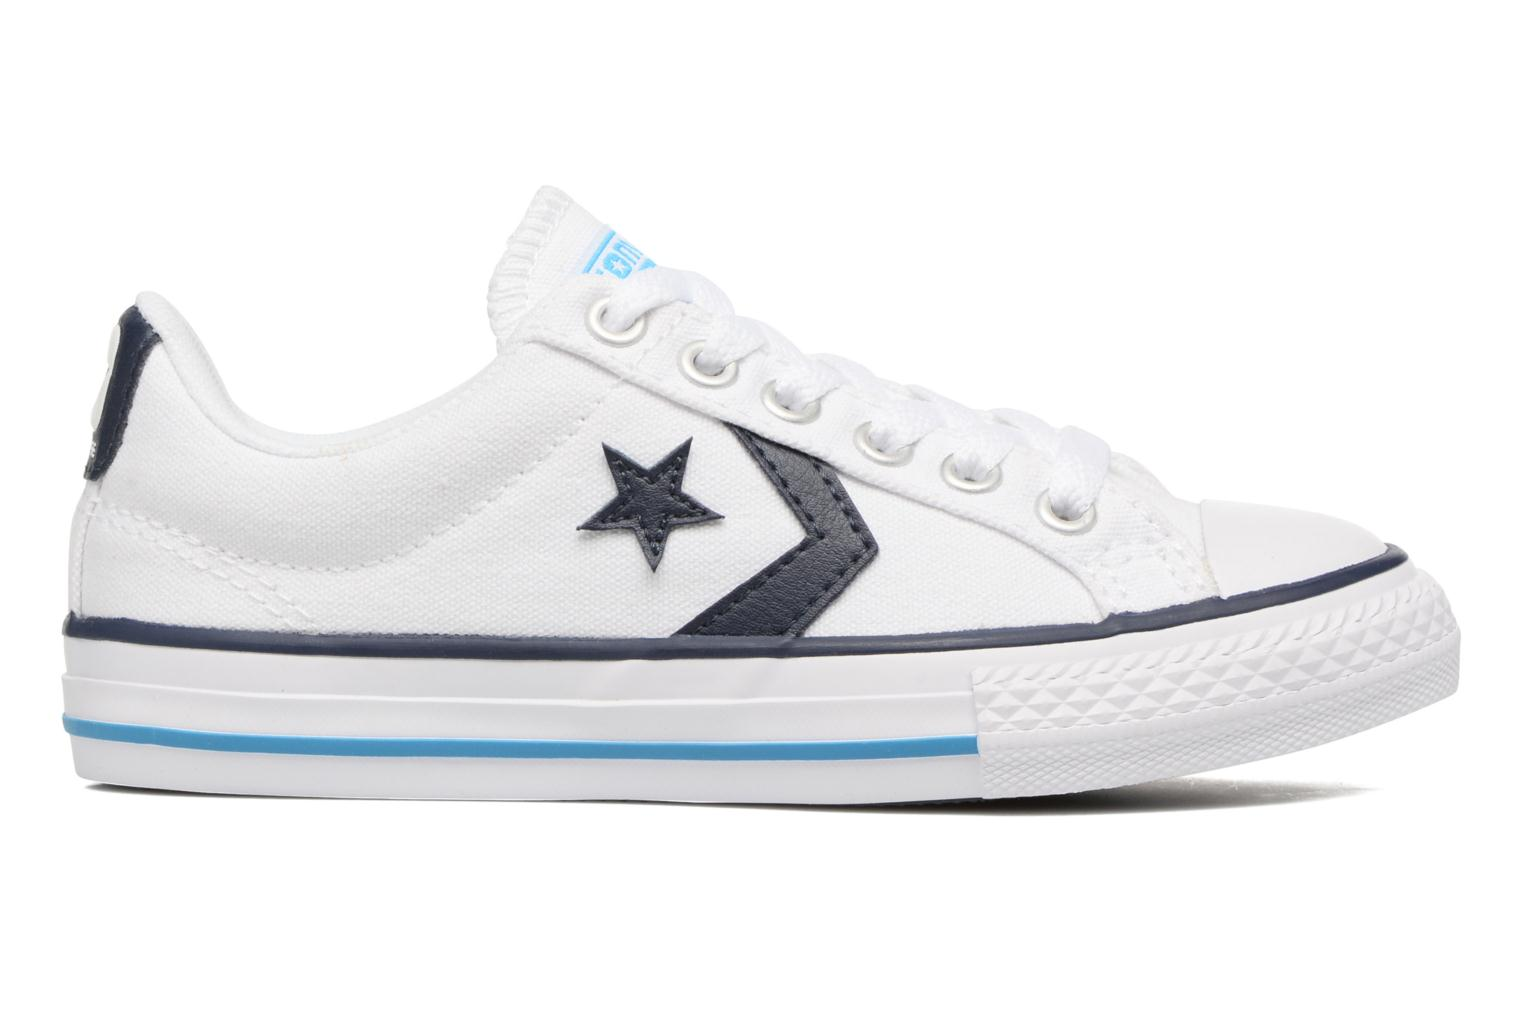 Star player canvas ox k White/Athletic Navy/Blithe